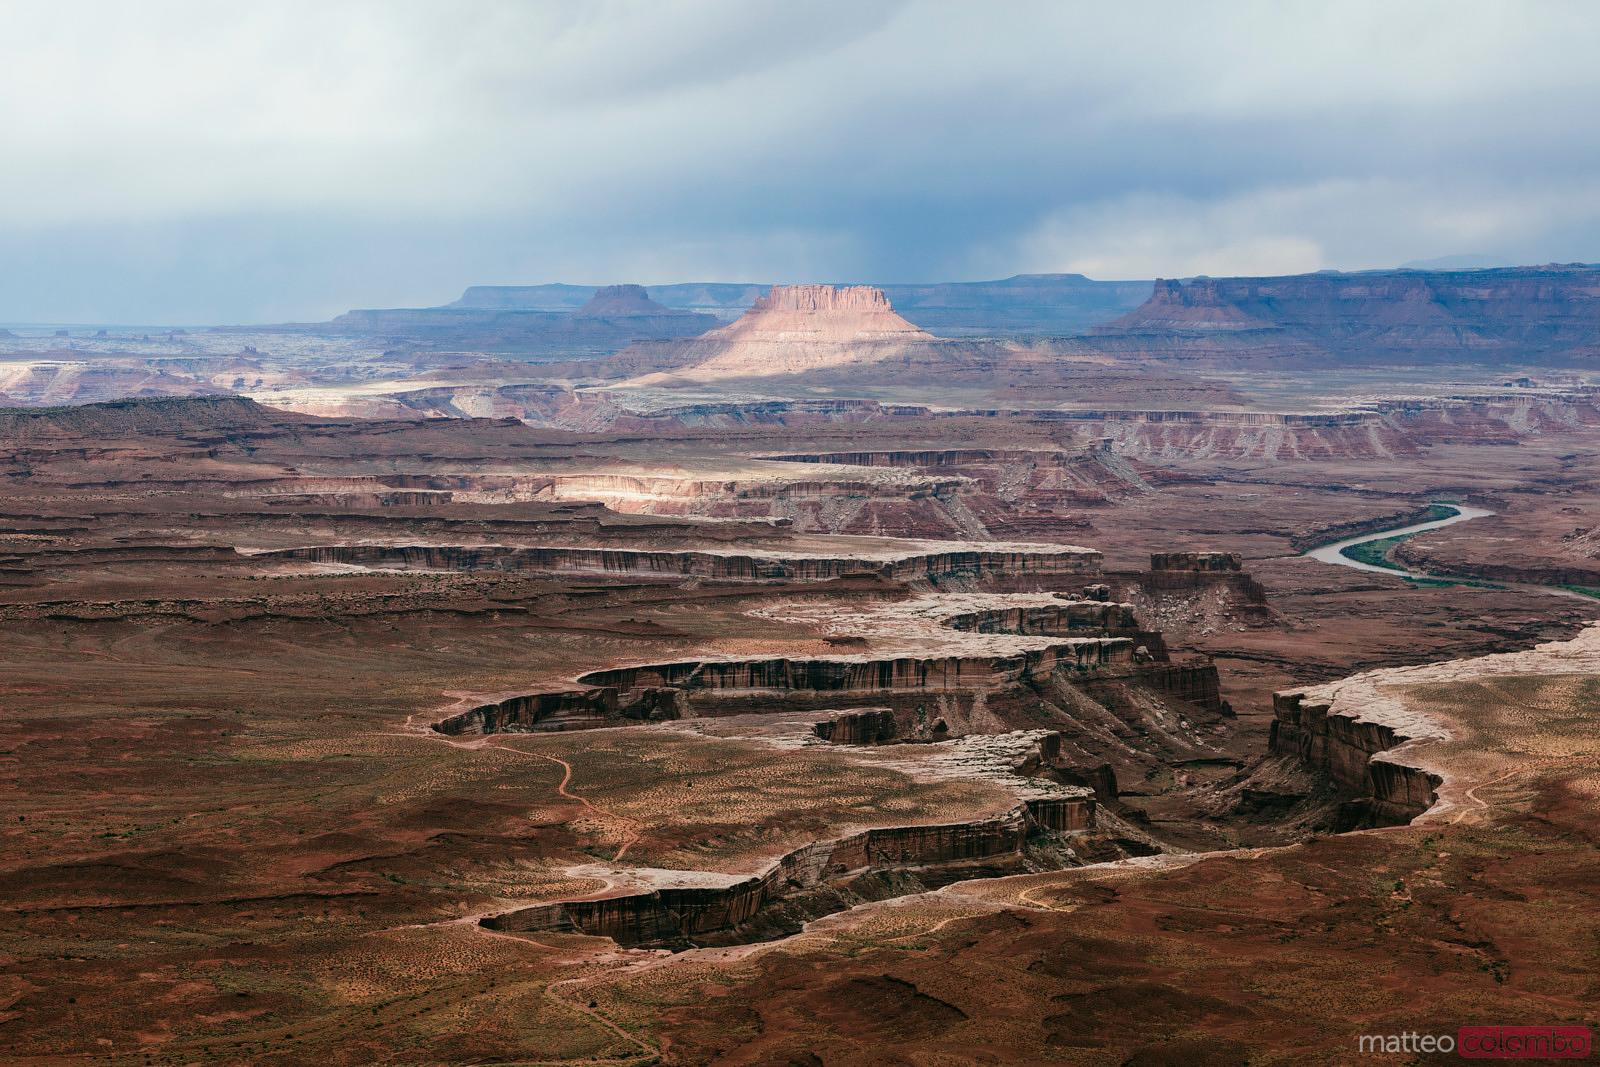 Dramatic weather over Canyonlands national park, USA